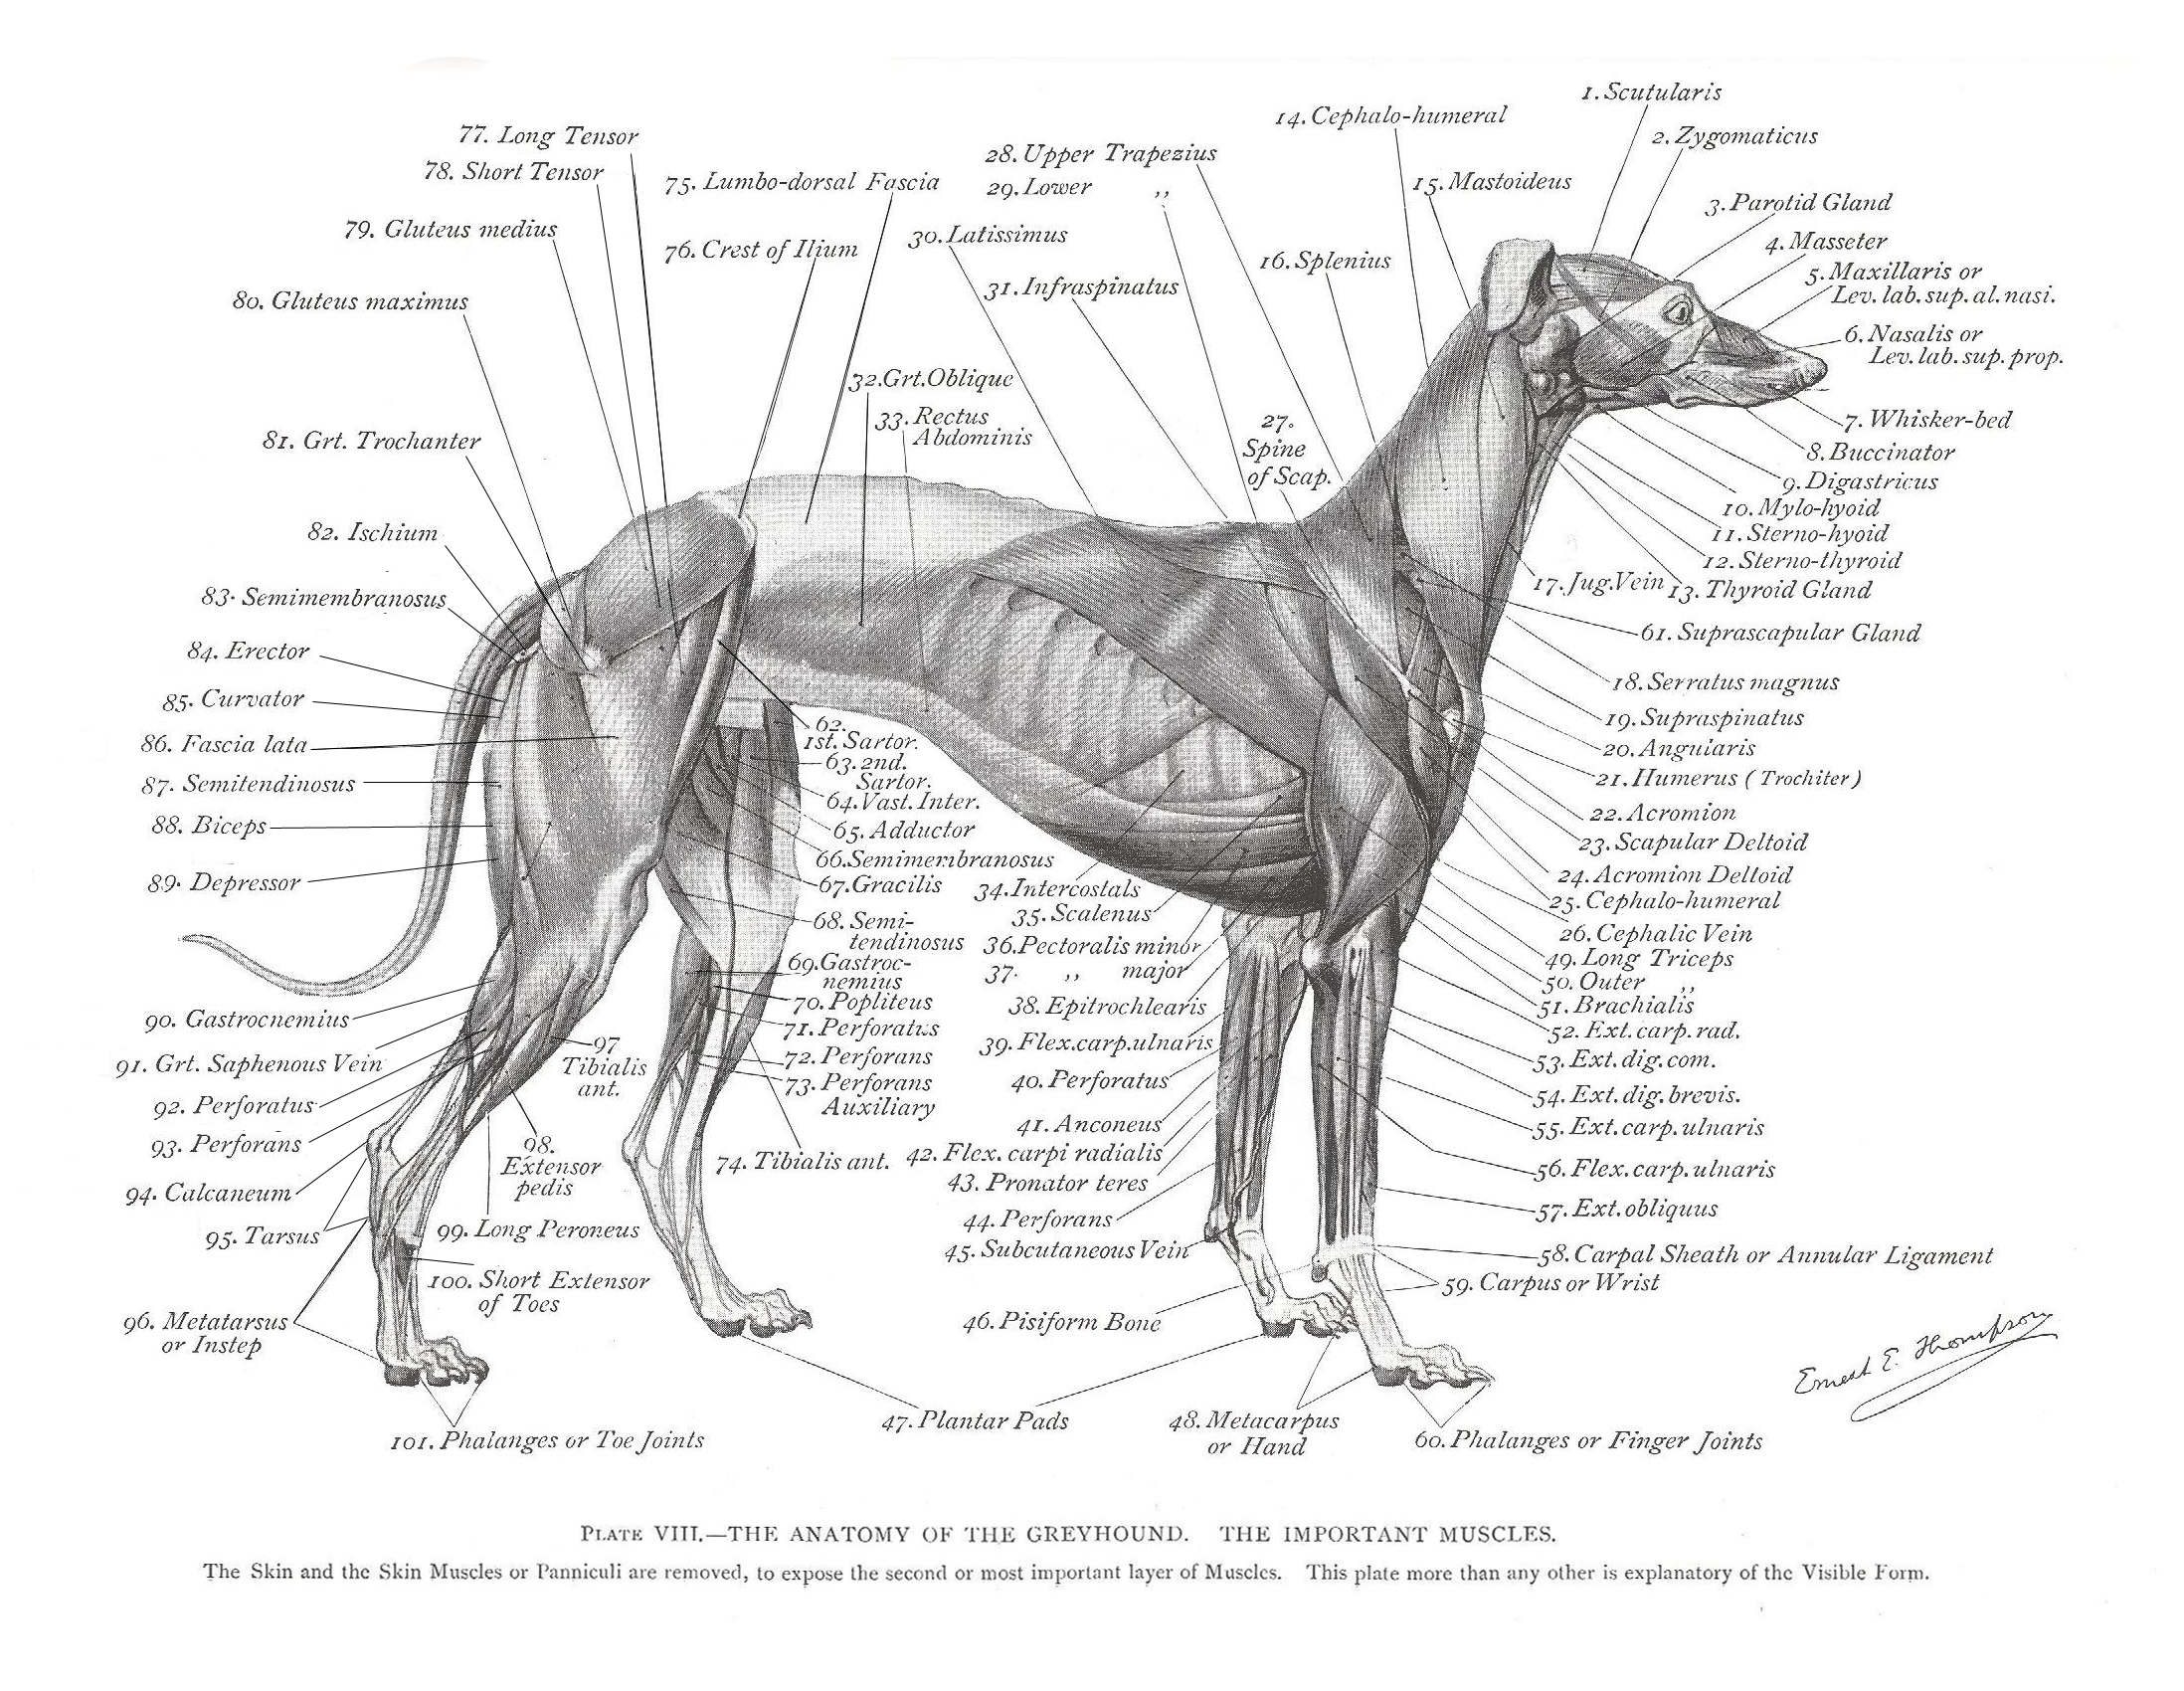 Greyhound Anatomy Diagram - The Muscles - click the link to get this ...